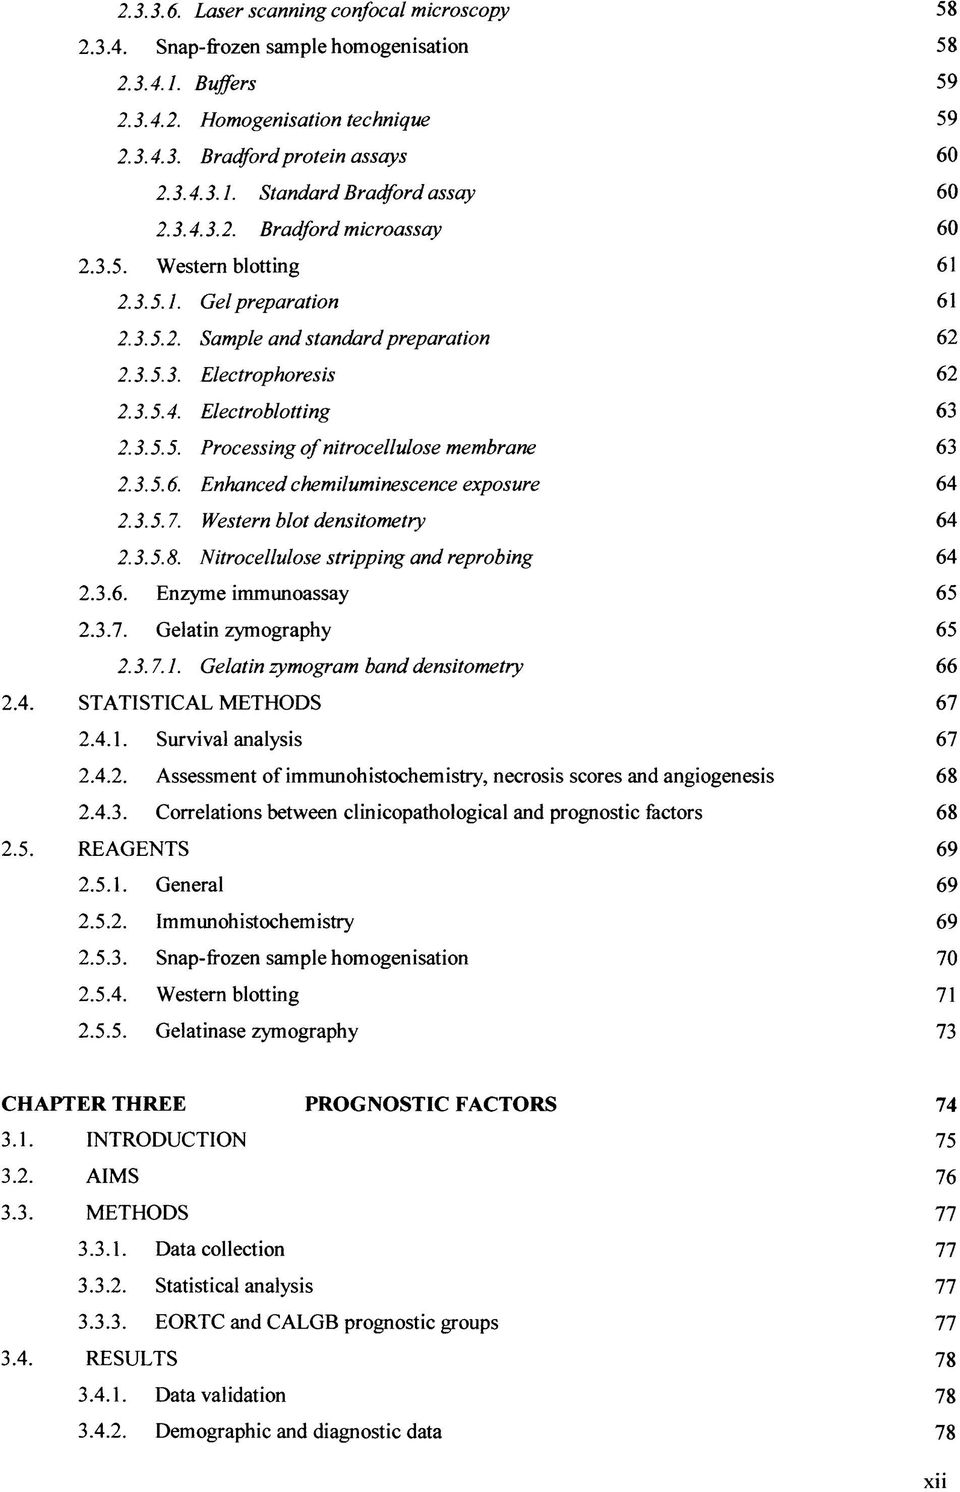 3.5.6. Enhanced chemiluminescence exposure 64 2.3.5.7. Western blot densitometry 64 2.3.5.8. Nitrocellulose stripping and reprobing 64 2.3.6. Enzyme immunoassay 65 2.3.7. Gelatin zymography 65 2.3.7.1.